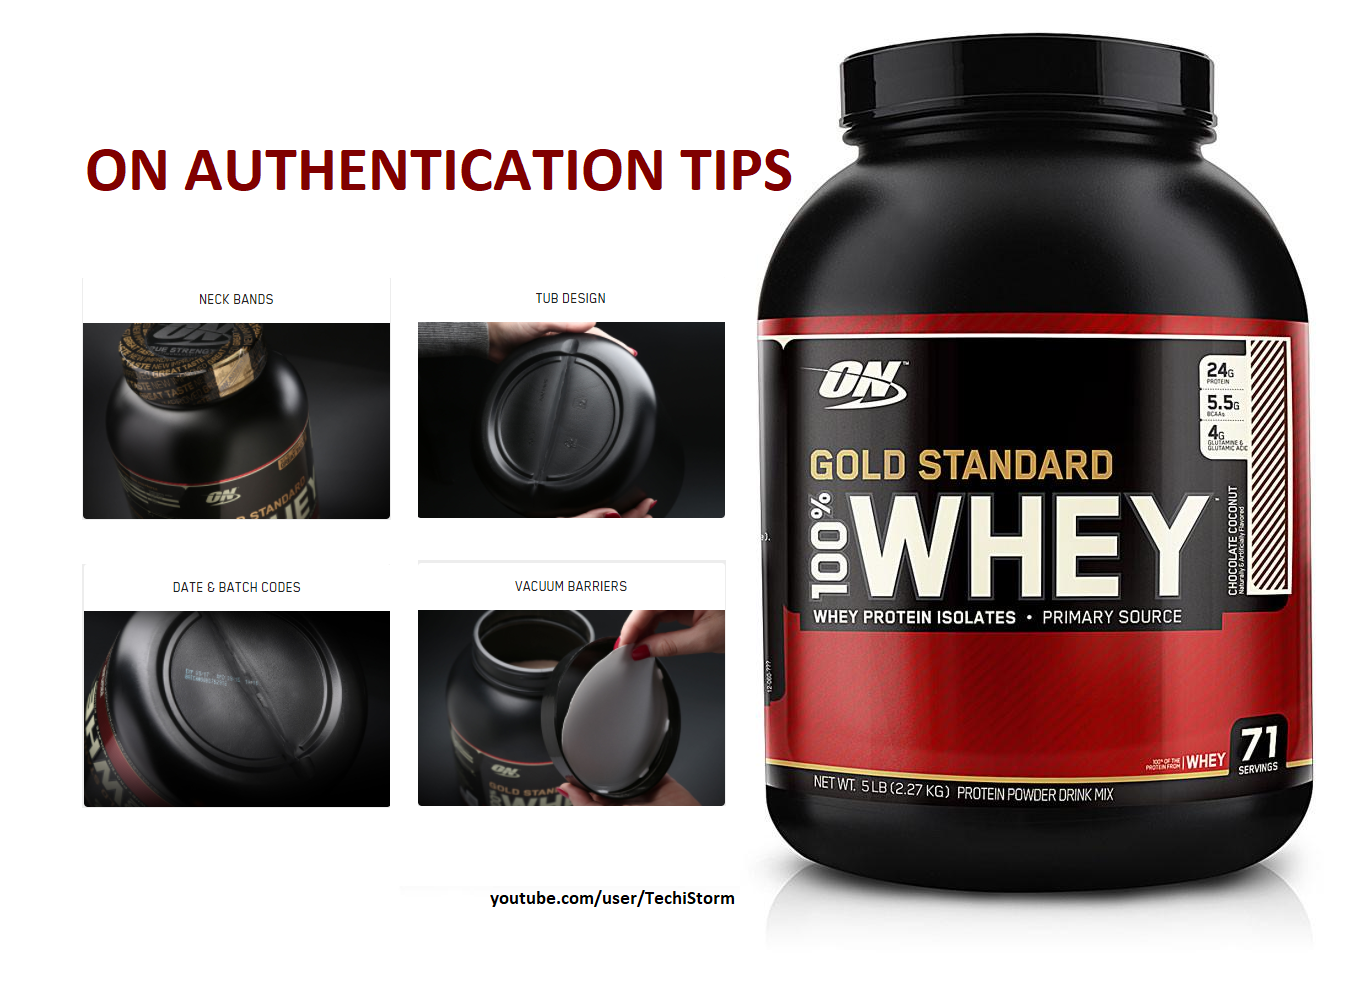 How To Verify Genuine Or Fake Optimum Nutrition 100 Whey Gold Standard Protein Review Https Yo Gold Standard Whey Gold Standard Protein Optimum Nutrition